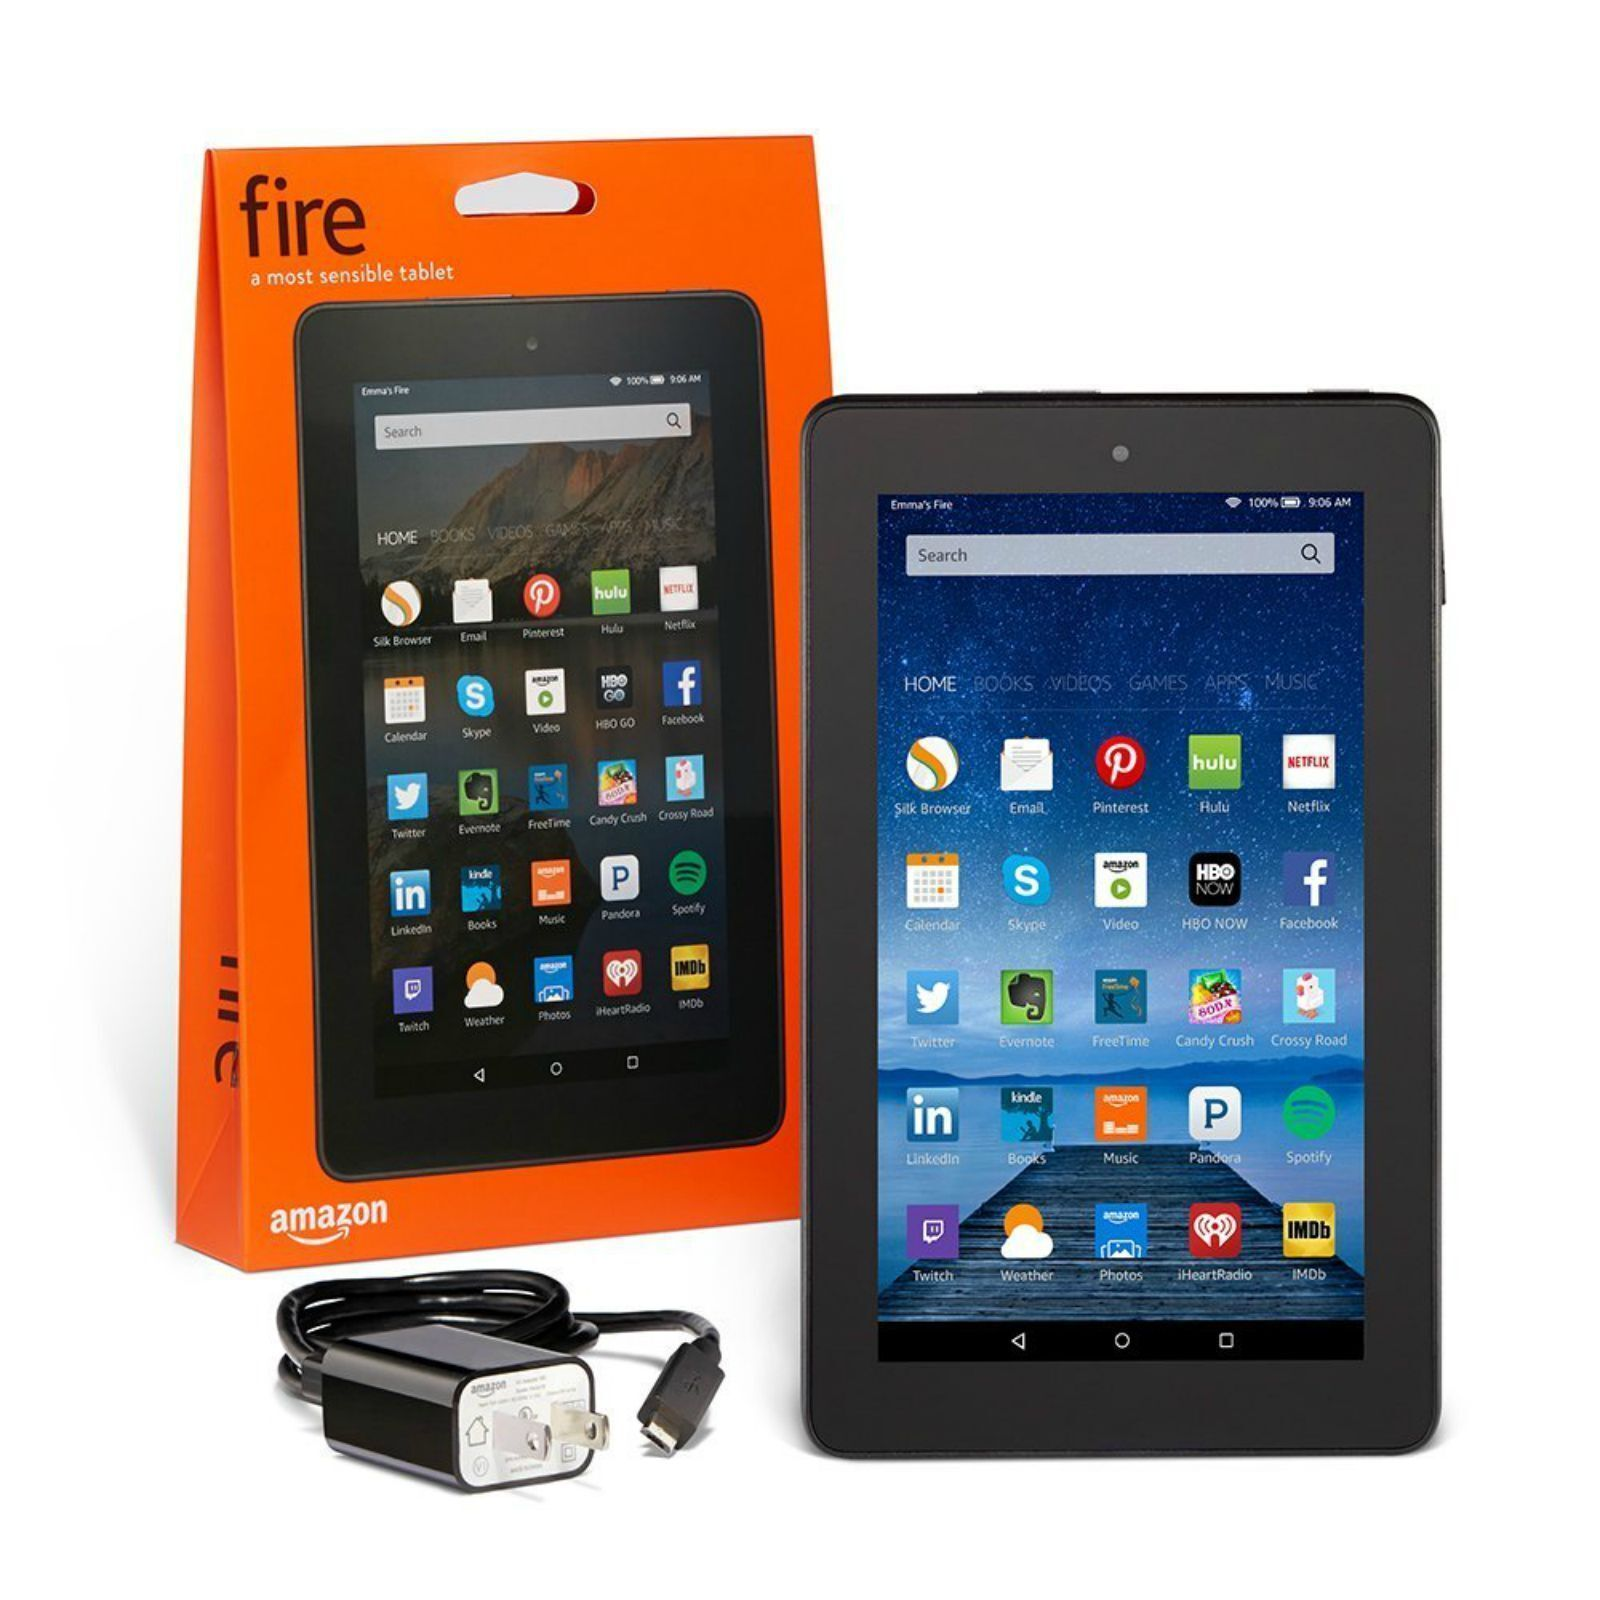 Amazon Kindle Fire 7 inch IPS 8 GB Black w/ Front & Rear ... - photo#32